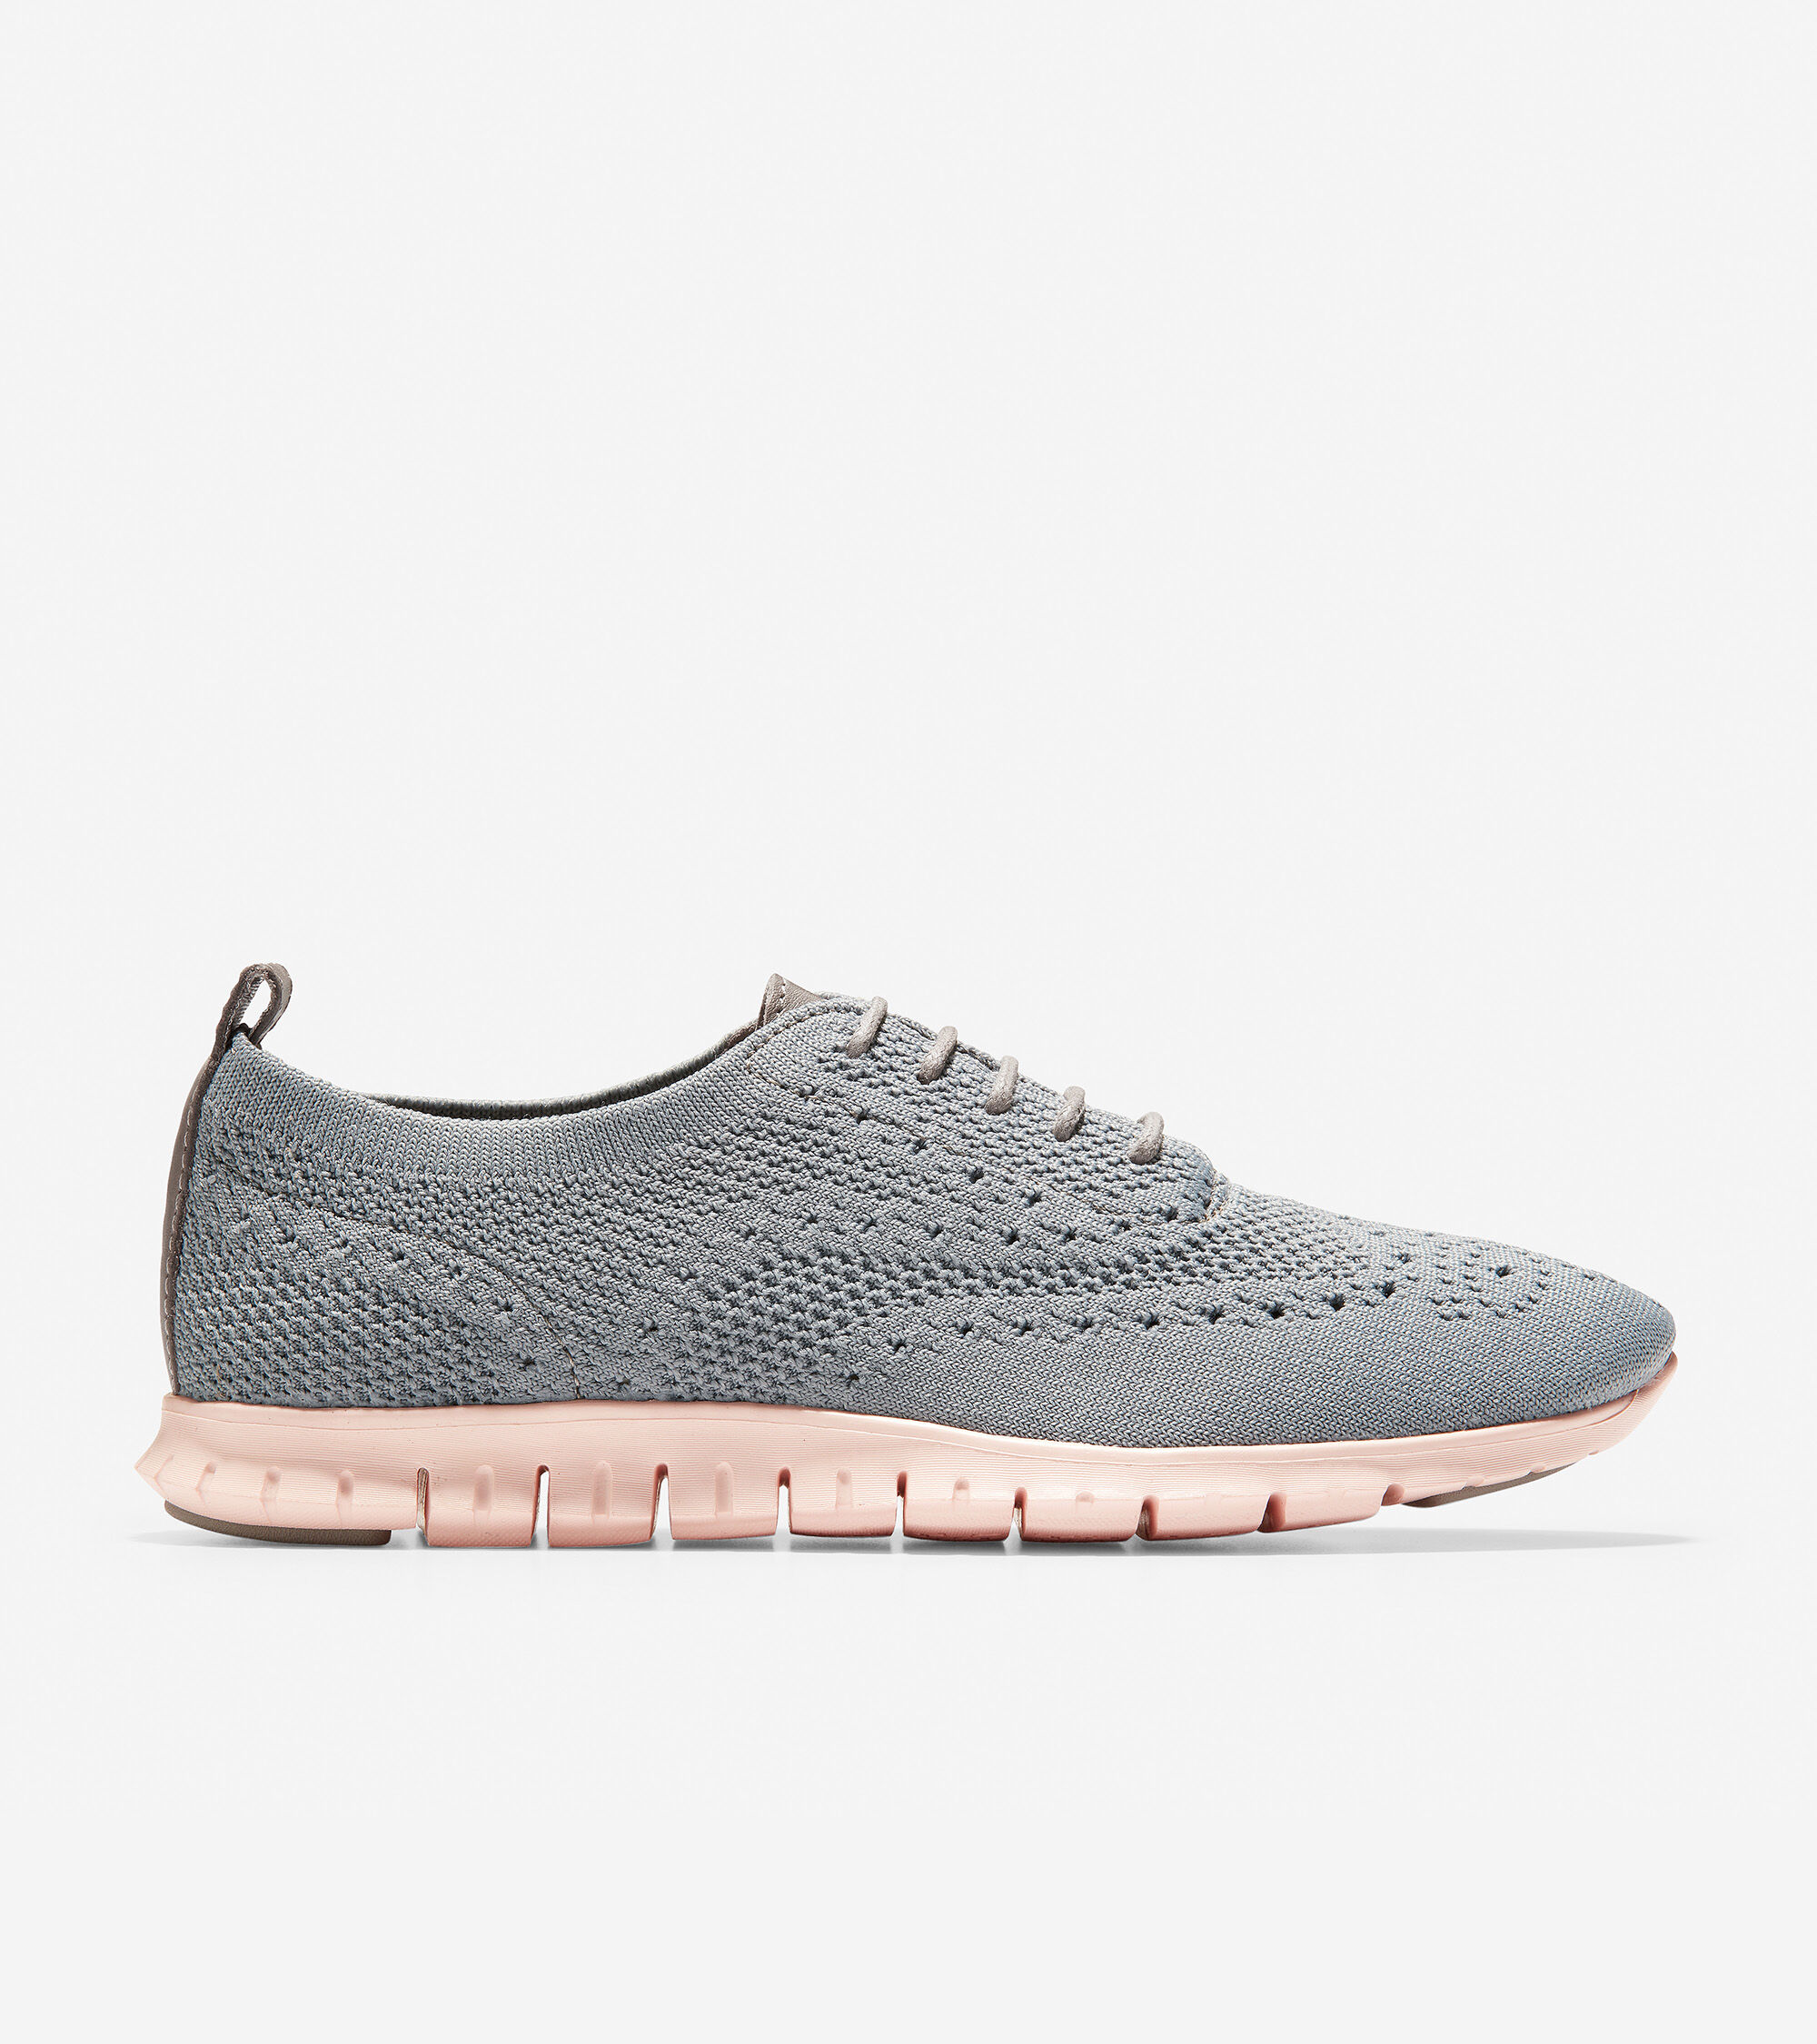 Cole Haan Womens ZEROGRAND Stitchlite Wingtip Oxford Shoes